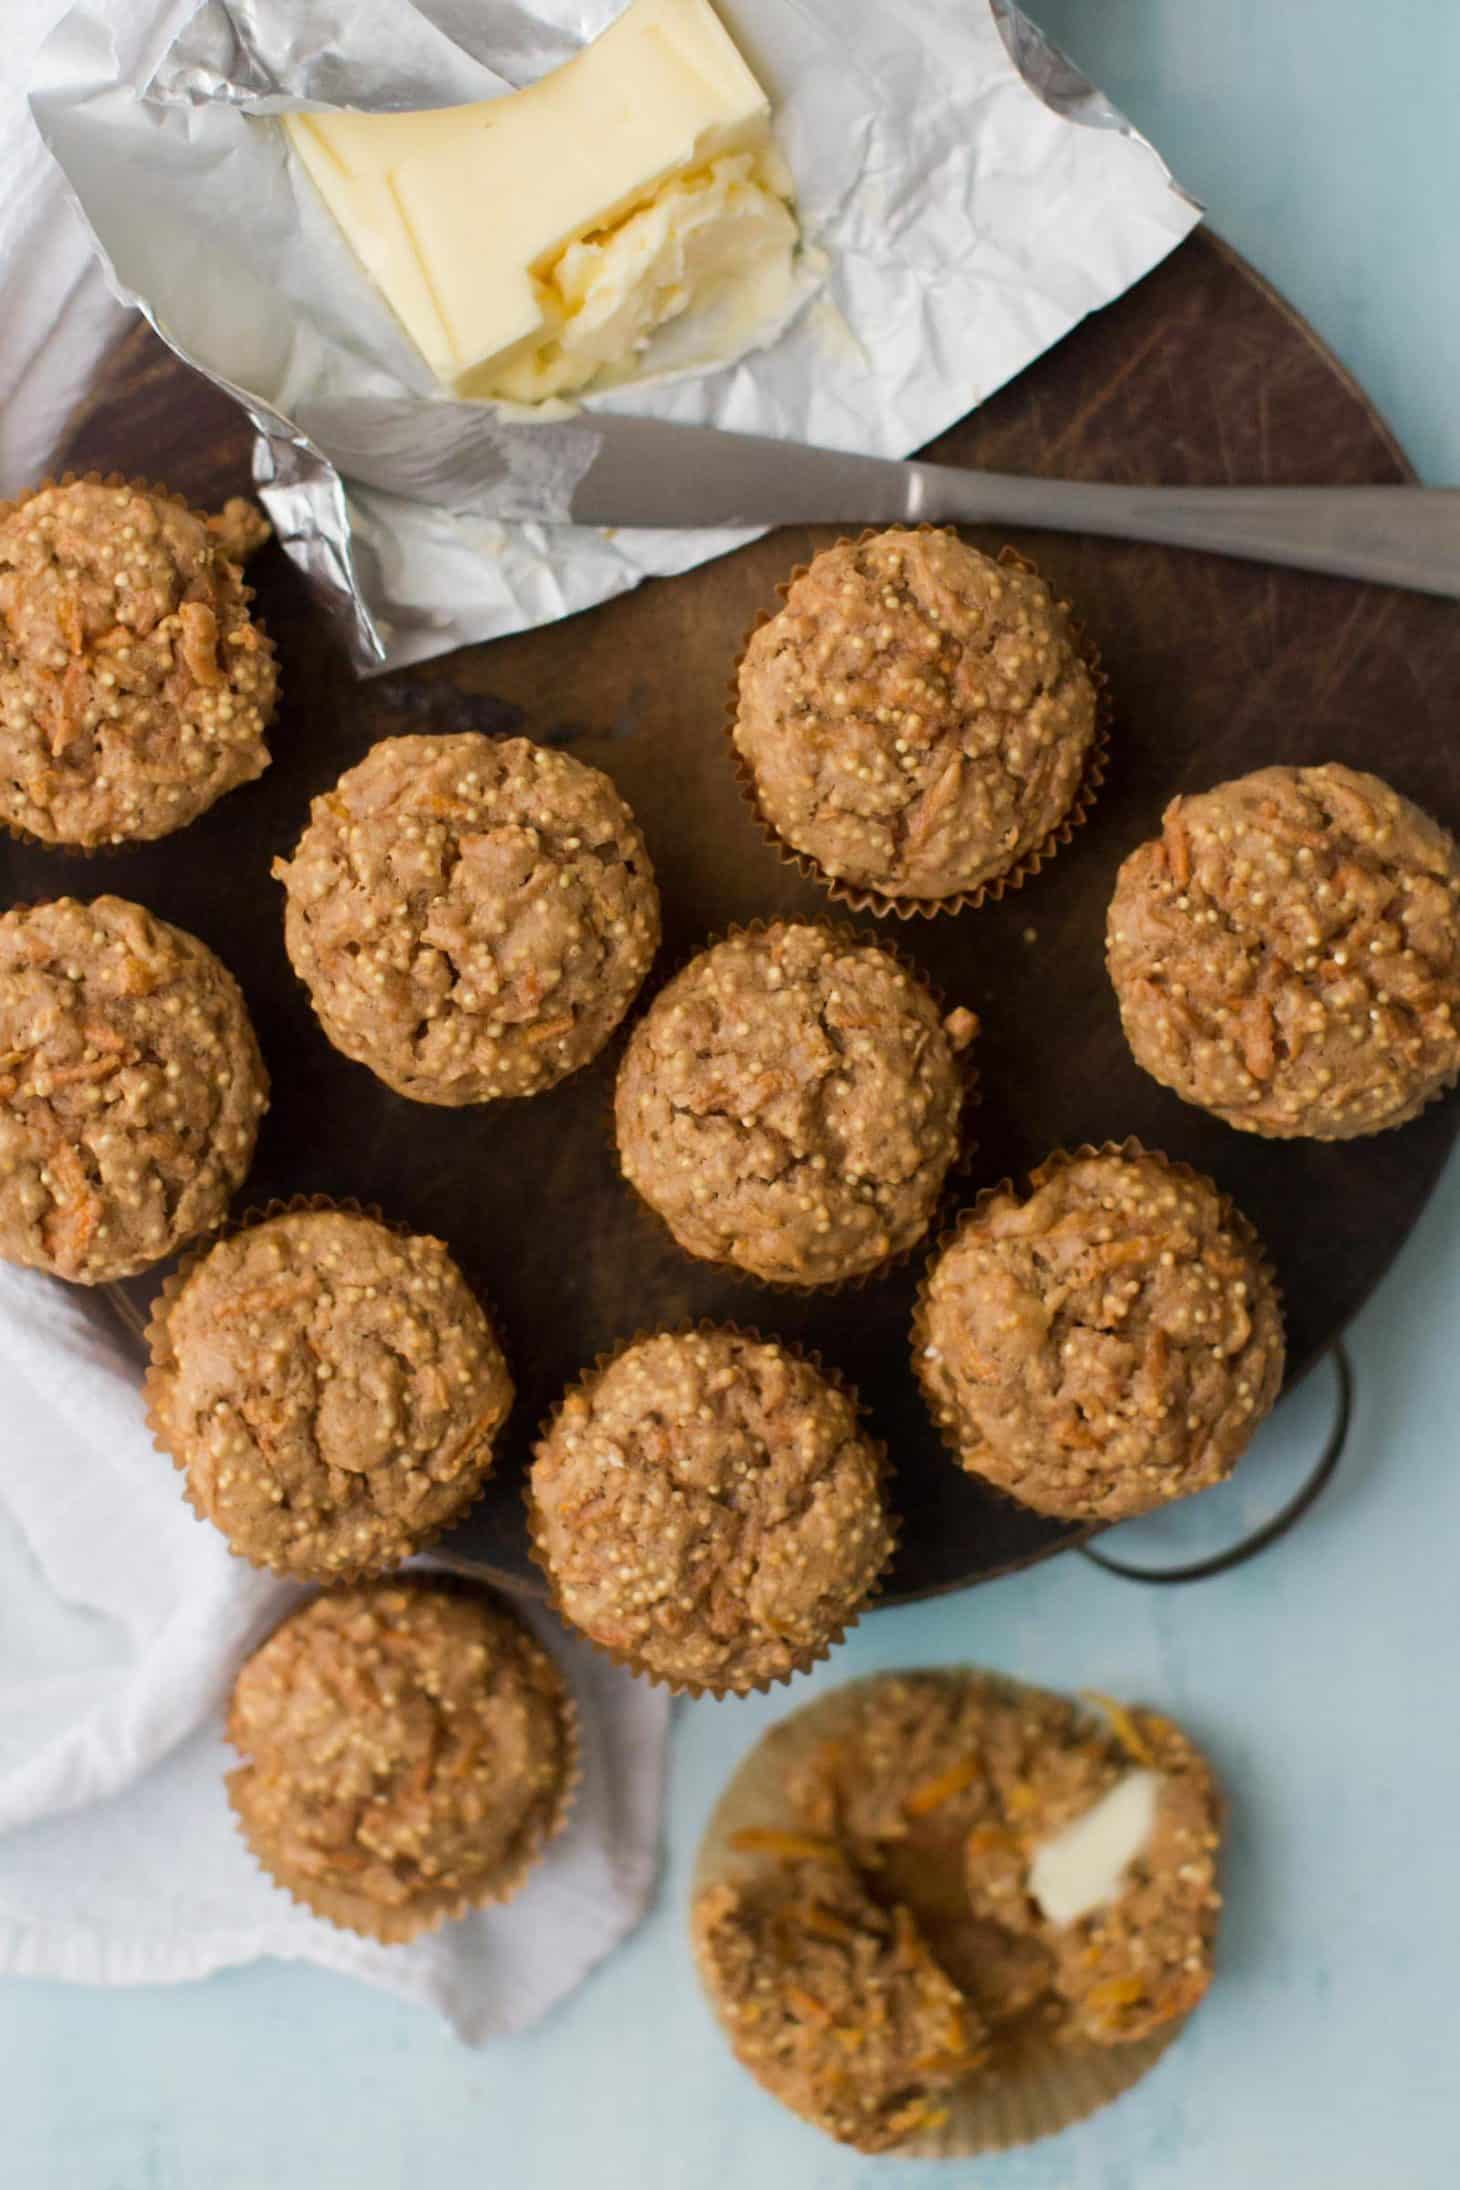 Carrot Muffins with Millet